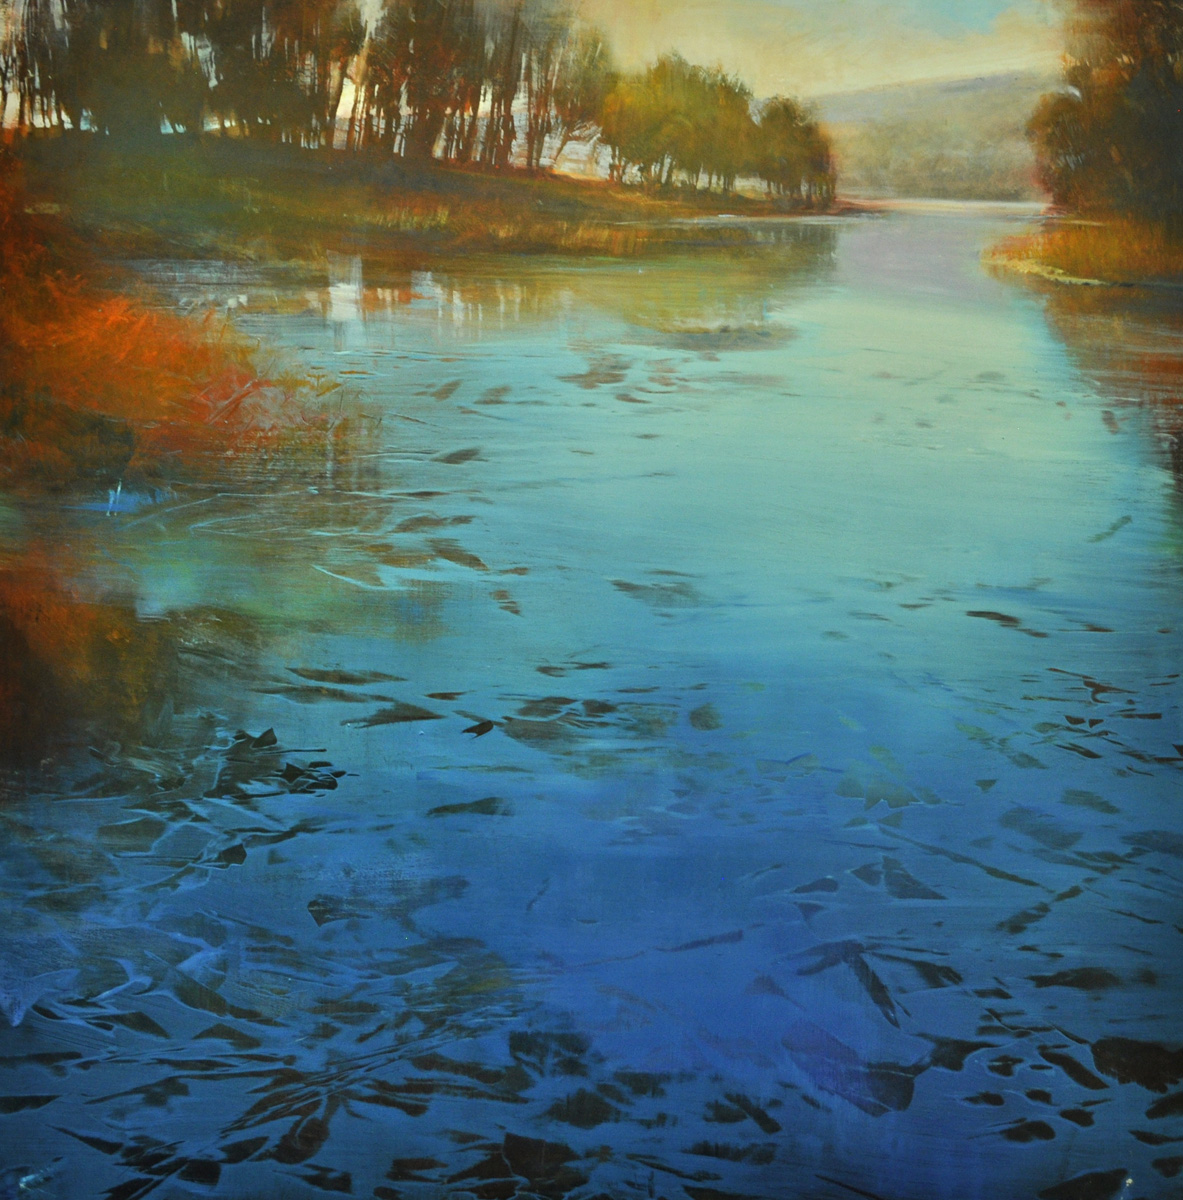 Dunlop_ Infinite River_oil on aluminum_36x36_6500.jpg